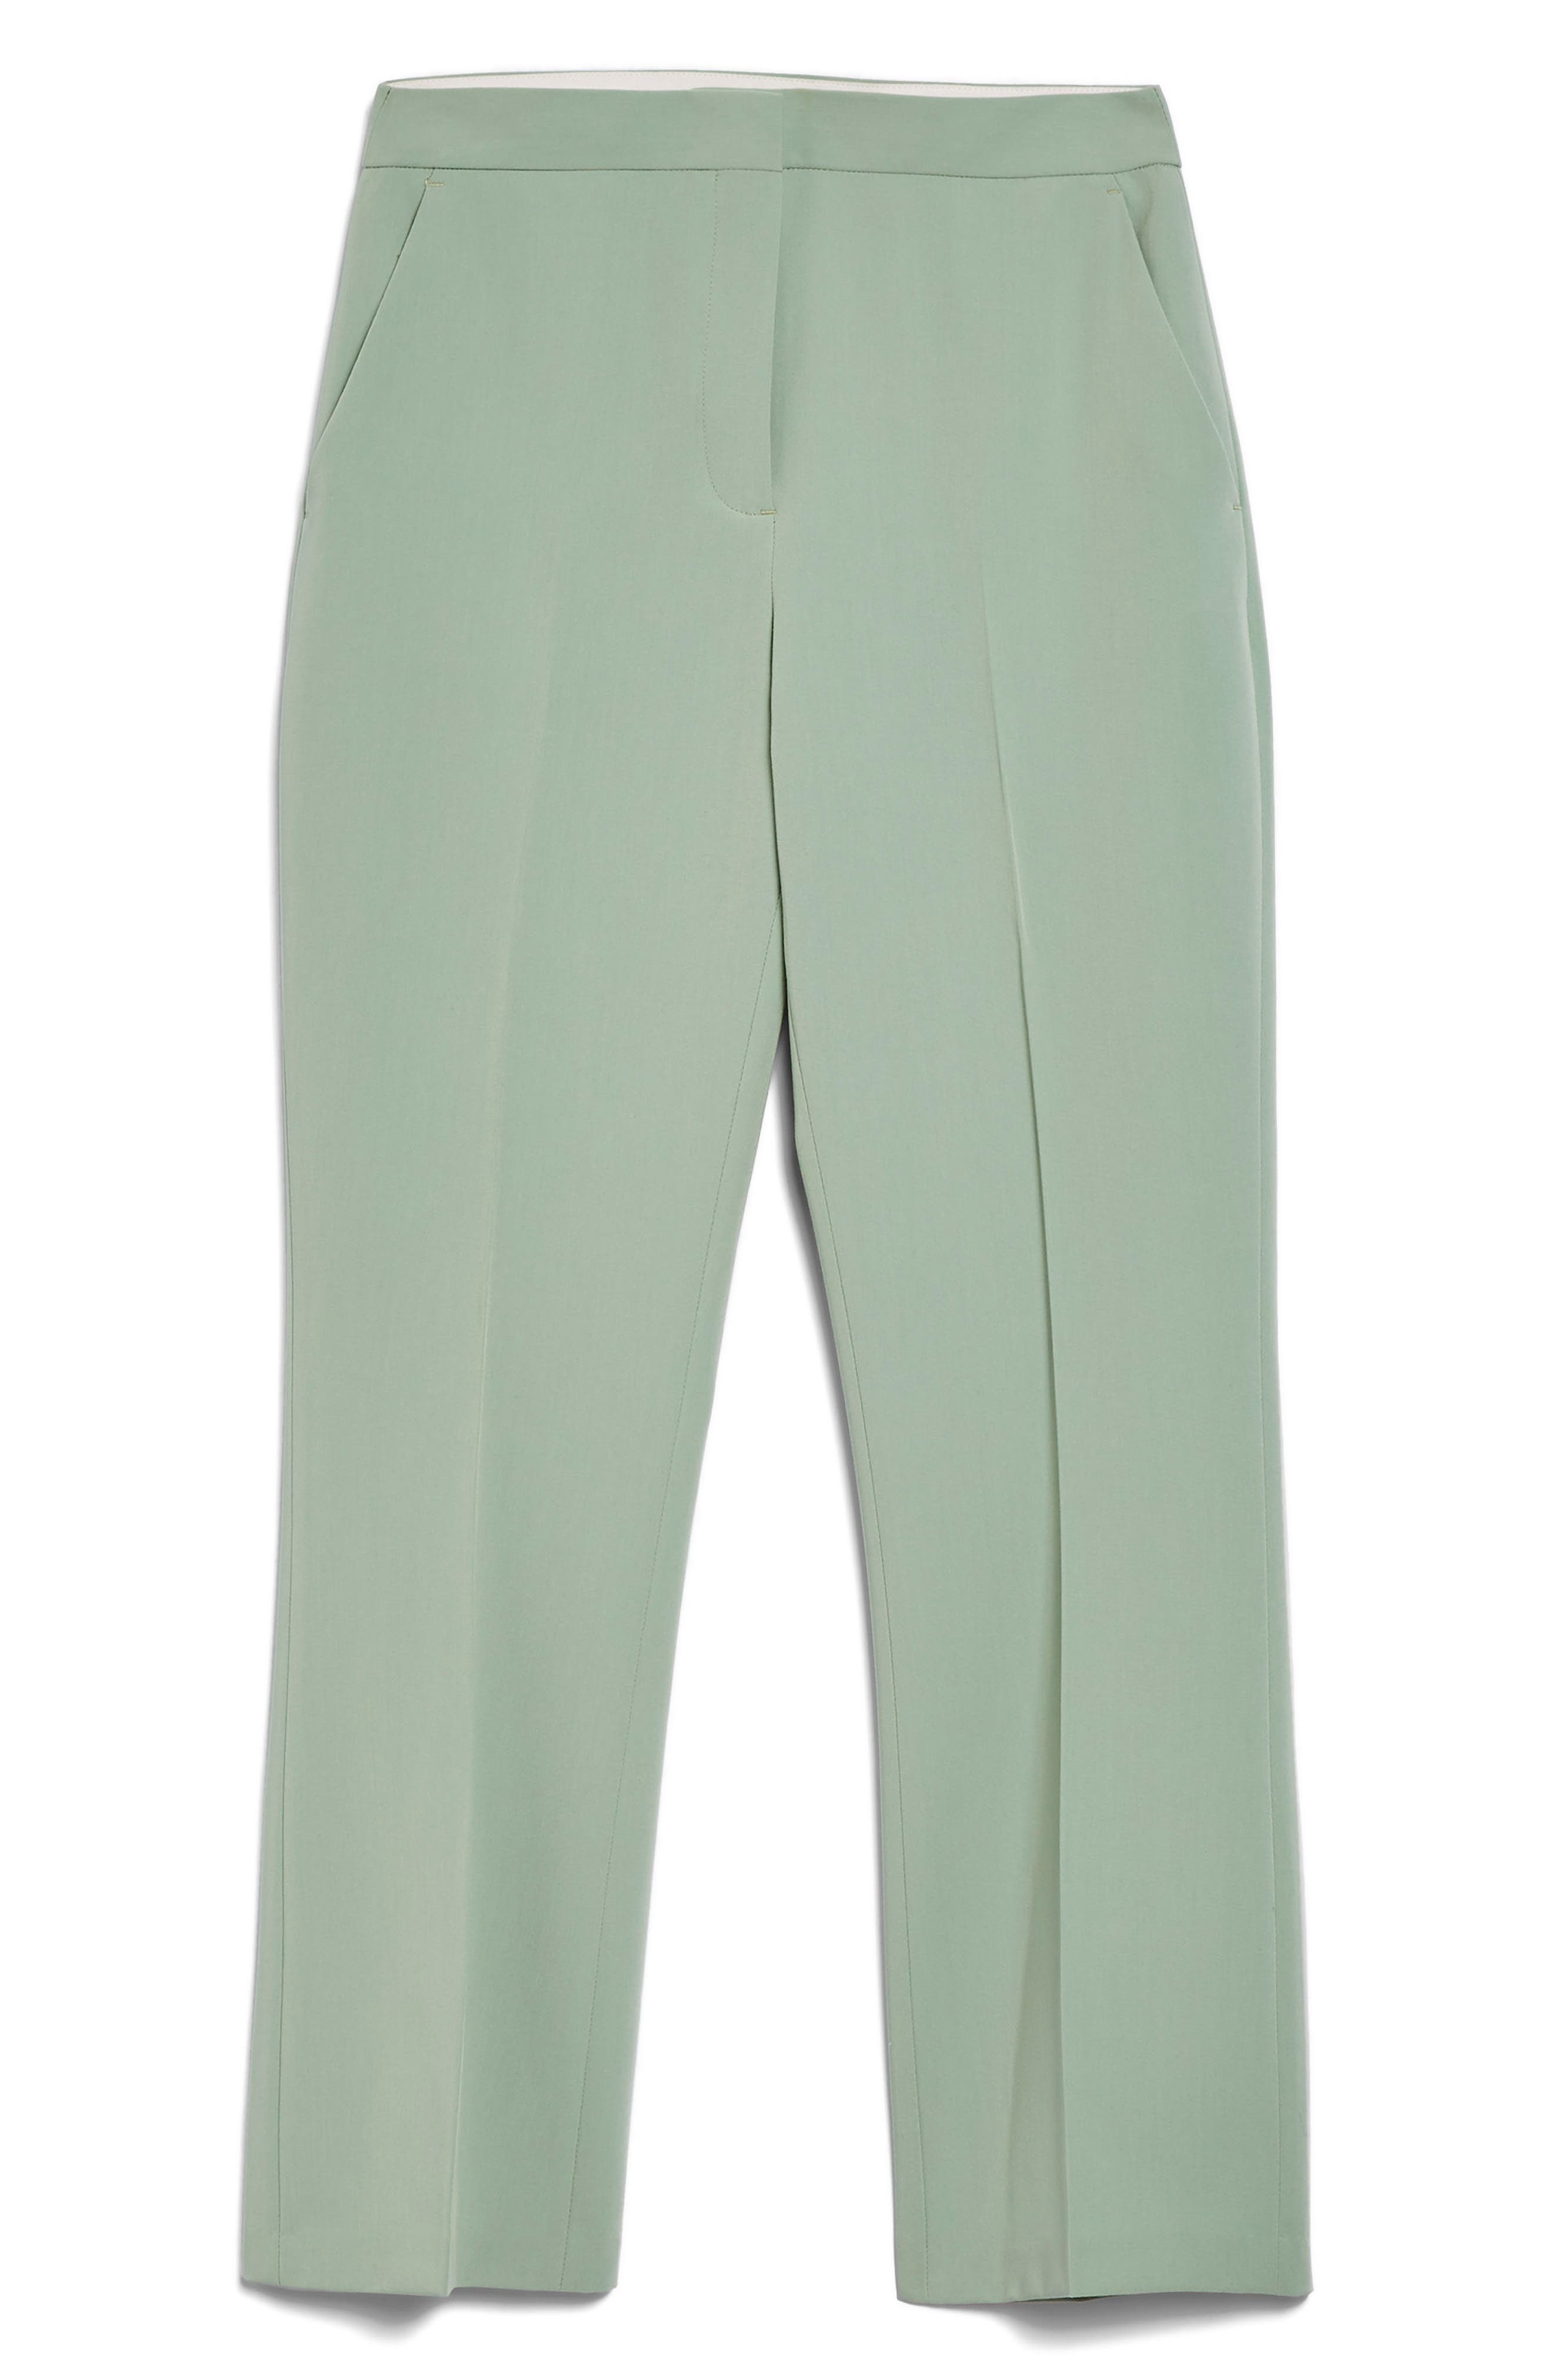 Cropped Suit Trousers,                             Alternate thumbnail 3, color,                             Light Green